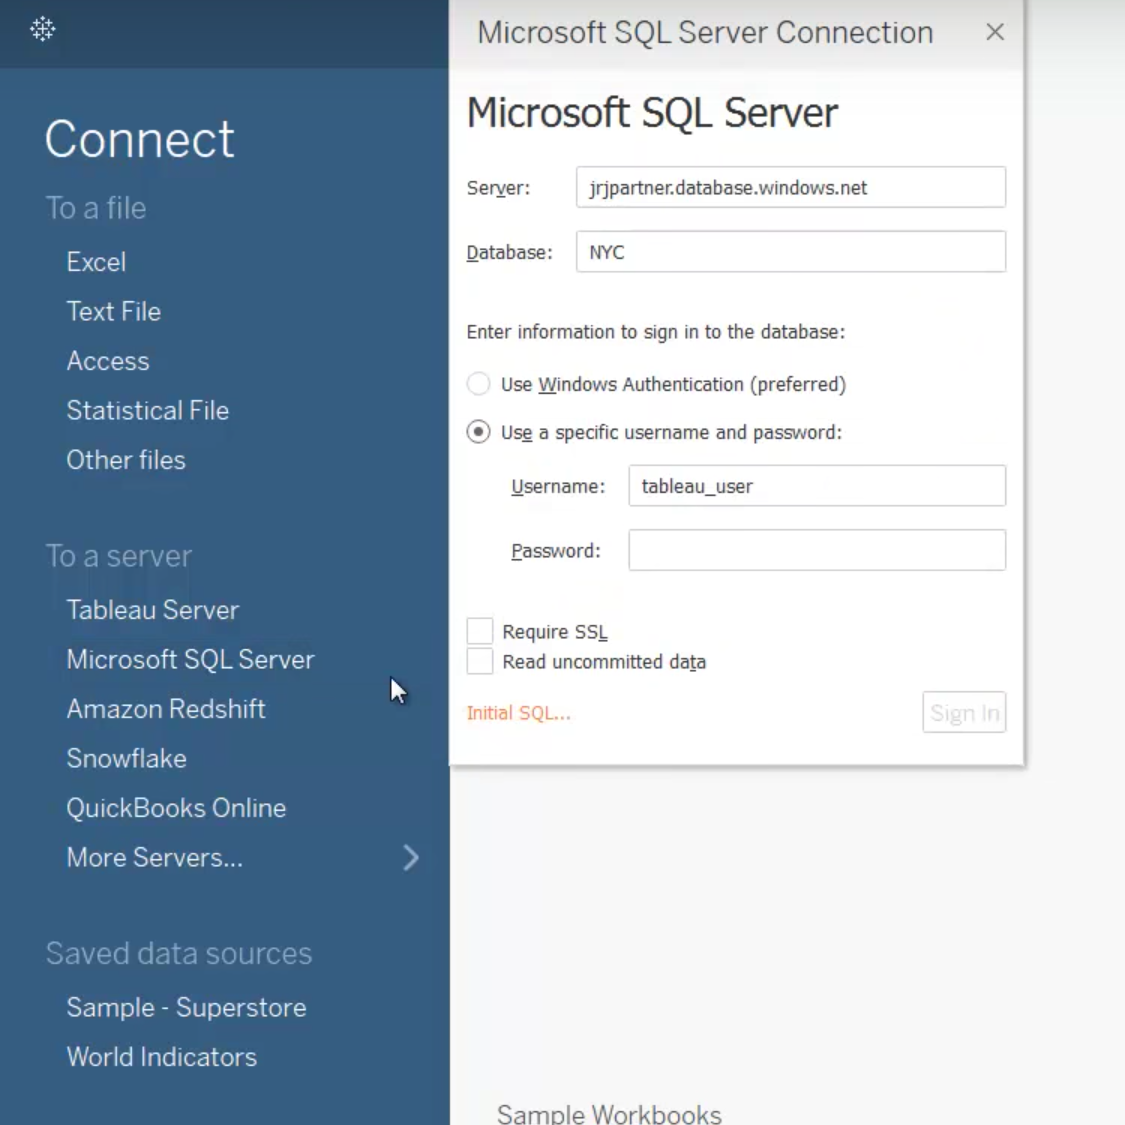 Image of Microsoft Azure SQL Data Warehouse: The Tableau experience